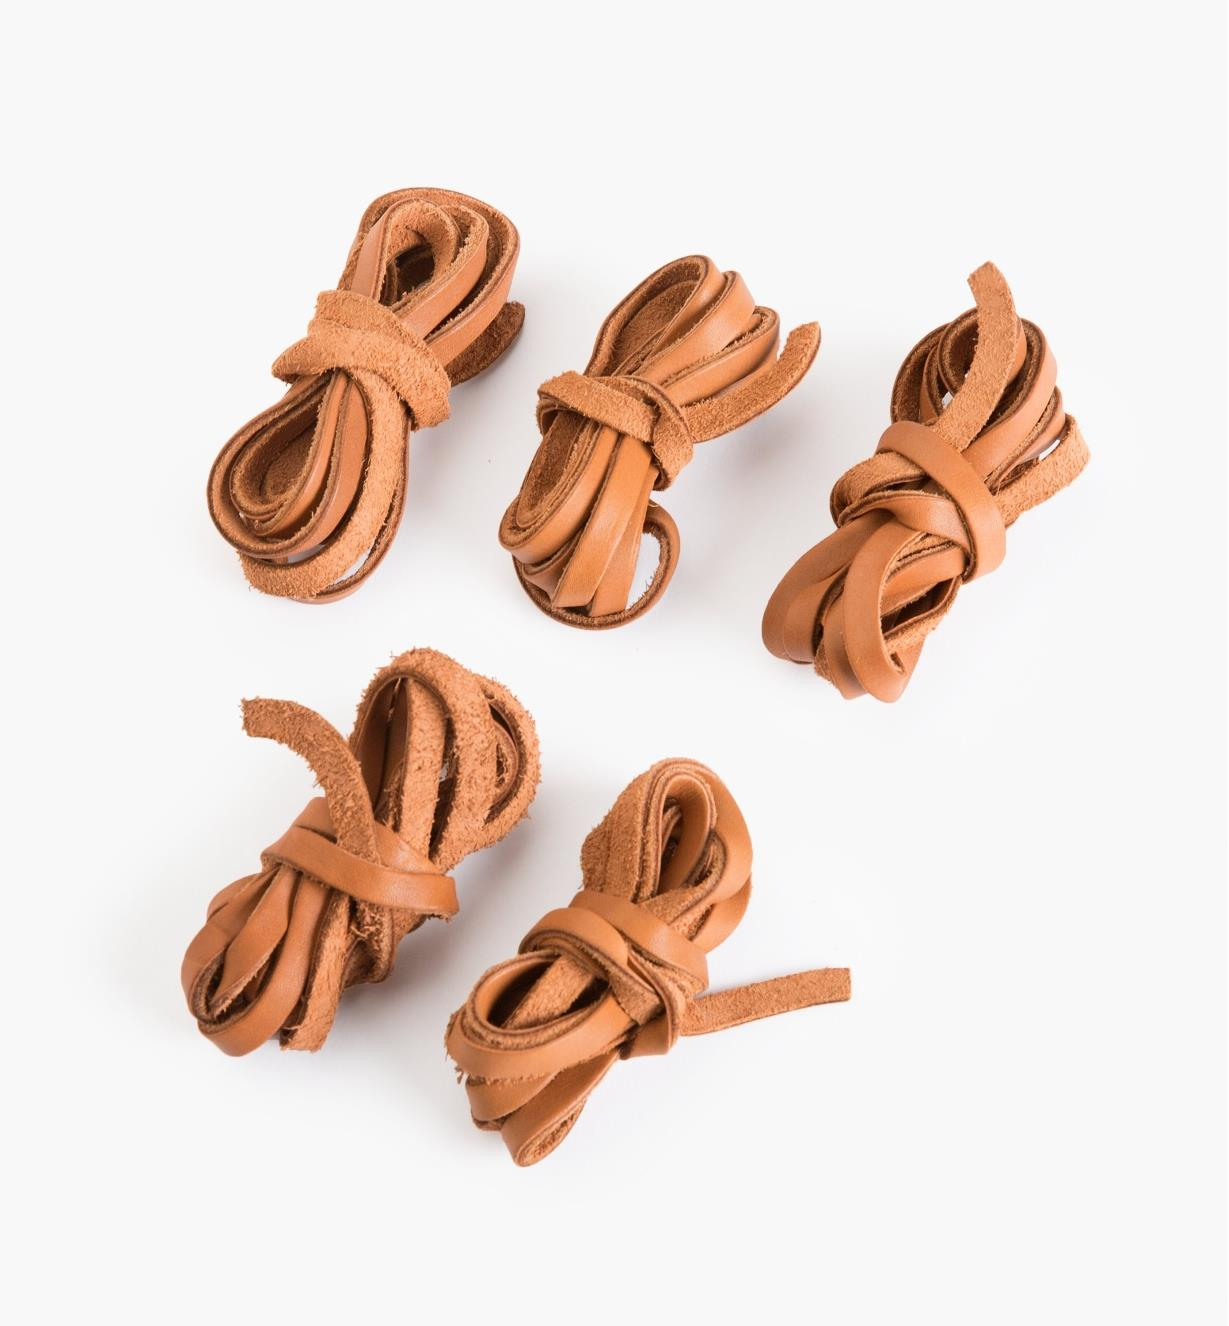 33K9113 - Leather Cords, pkg. of 5